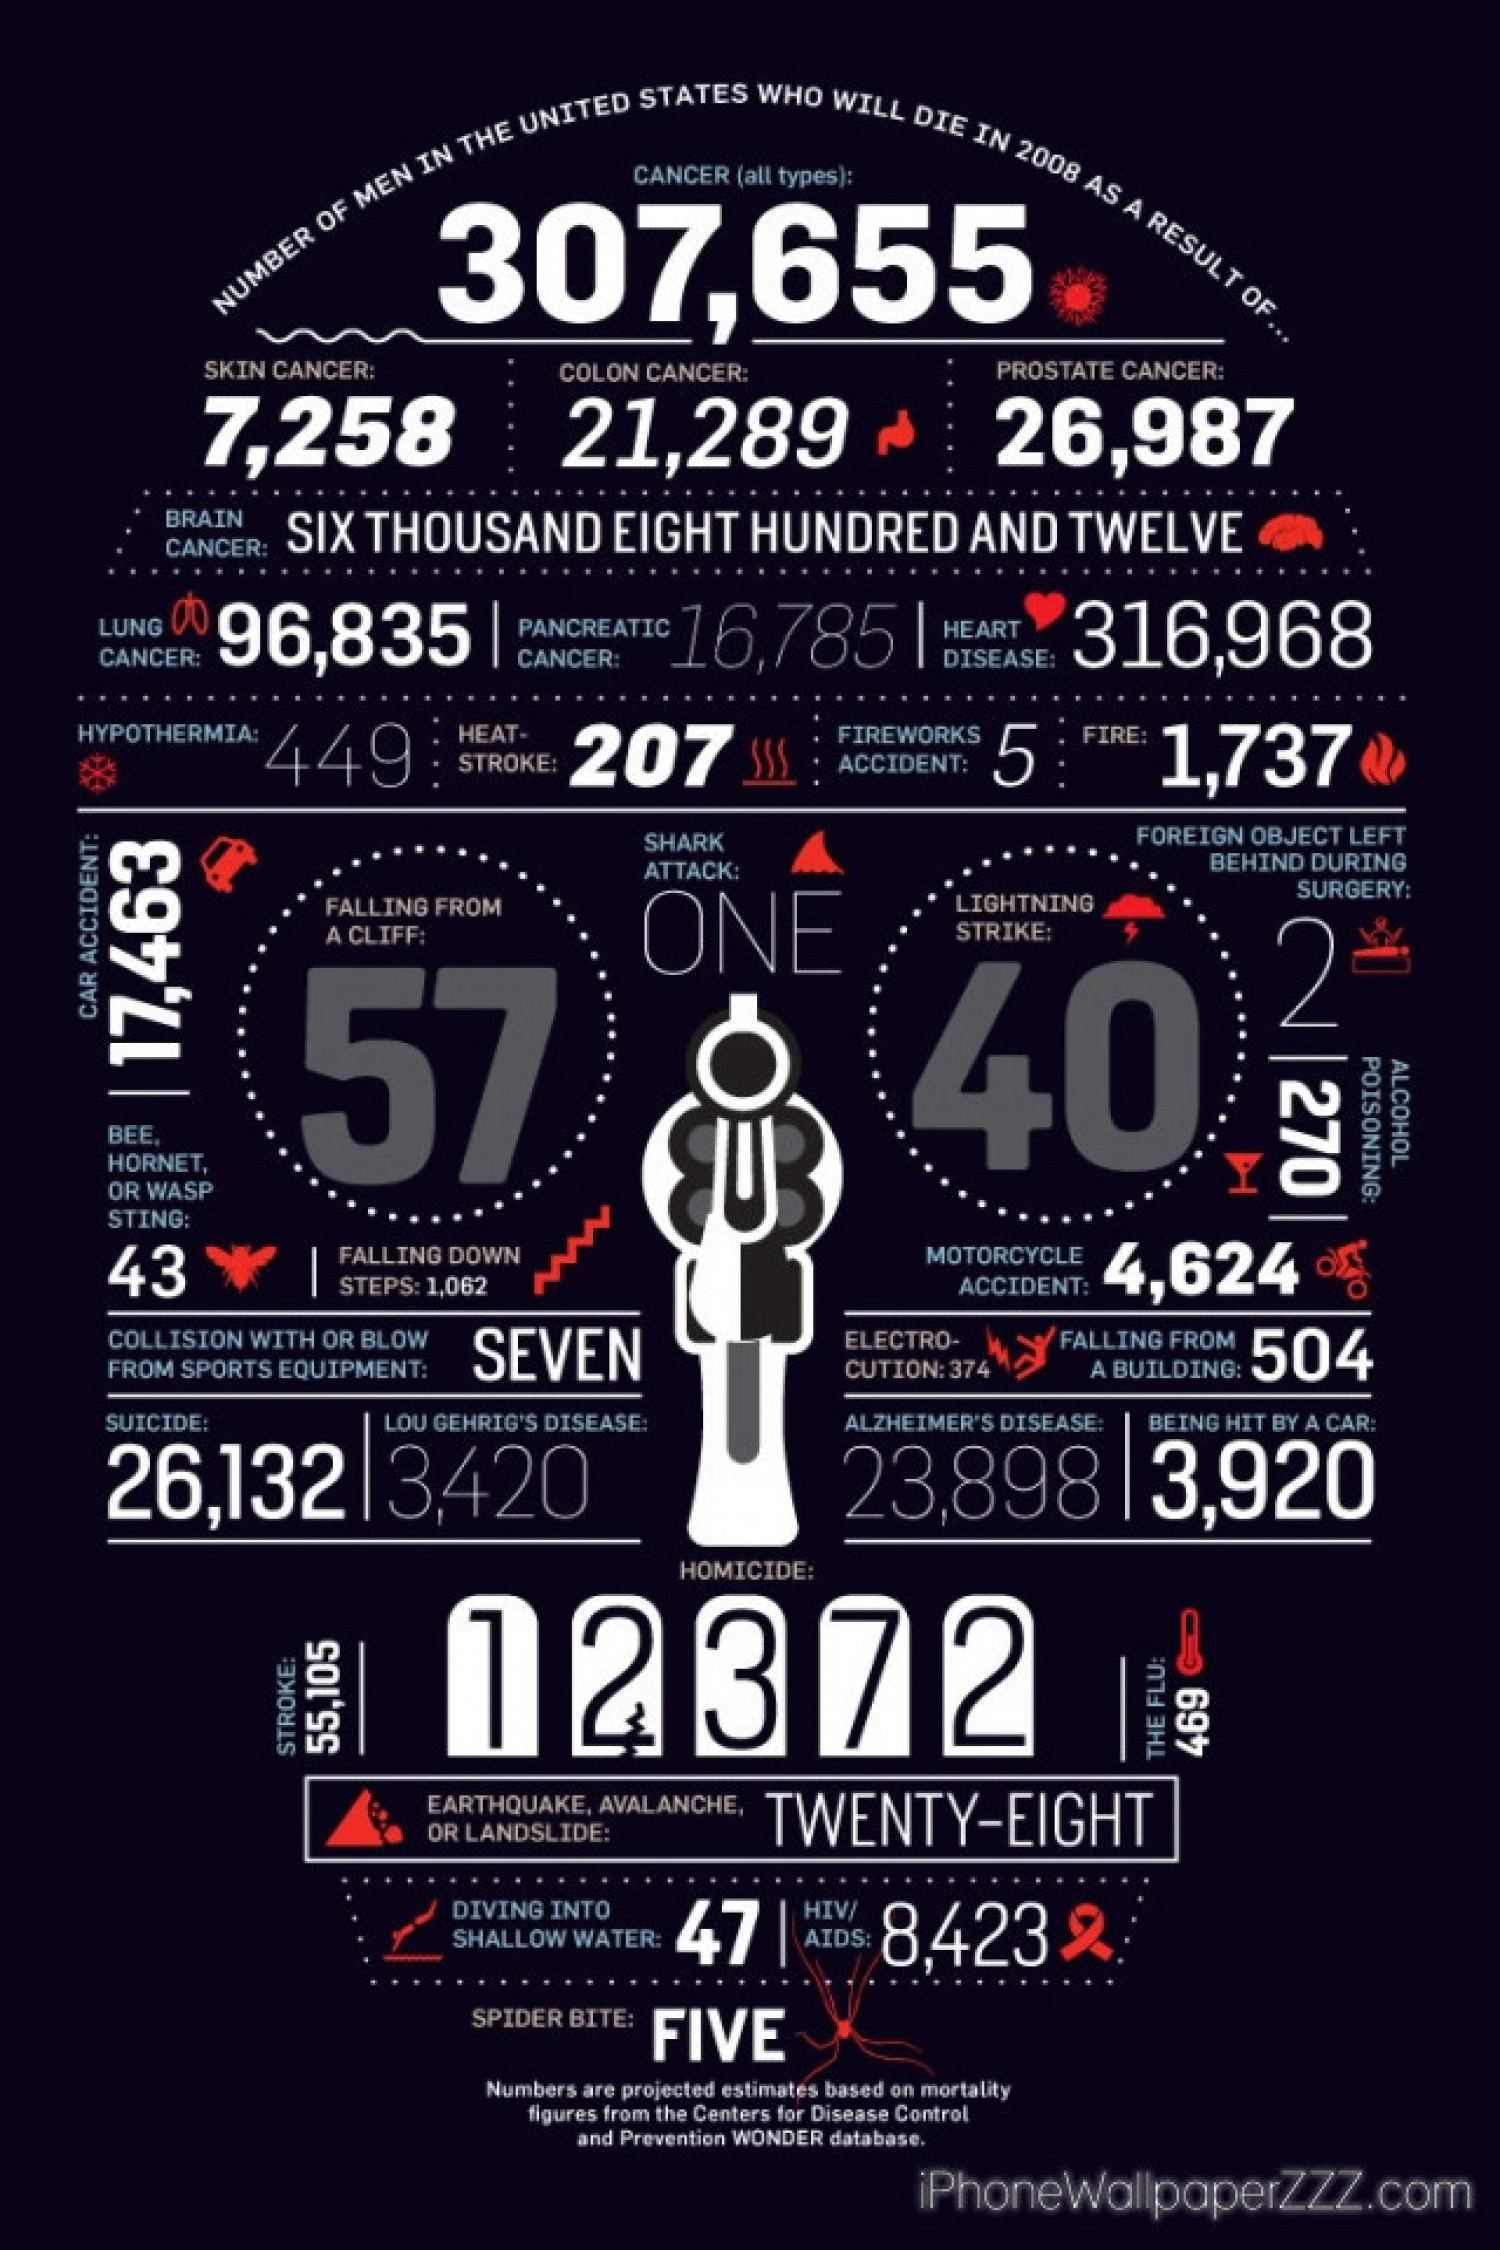 Number of Men in the United States Who Will Die in 2008 as a Result of Infographic